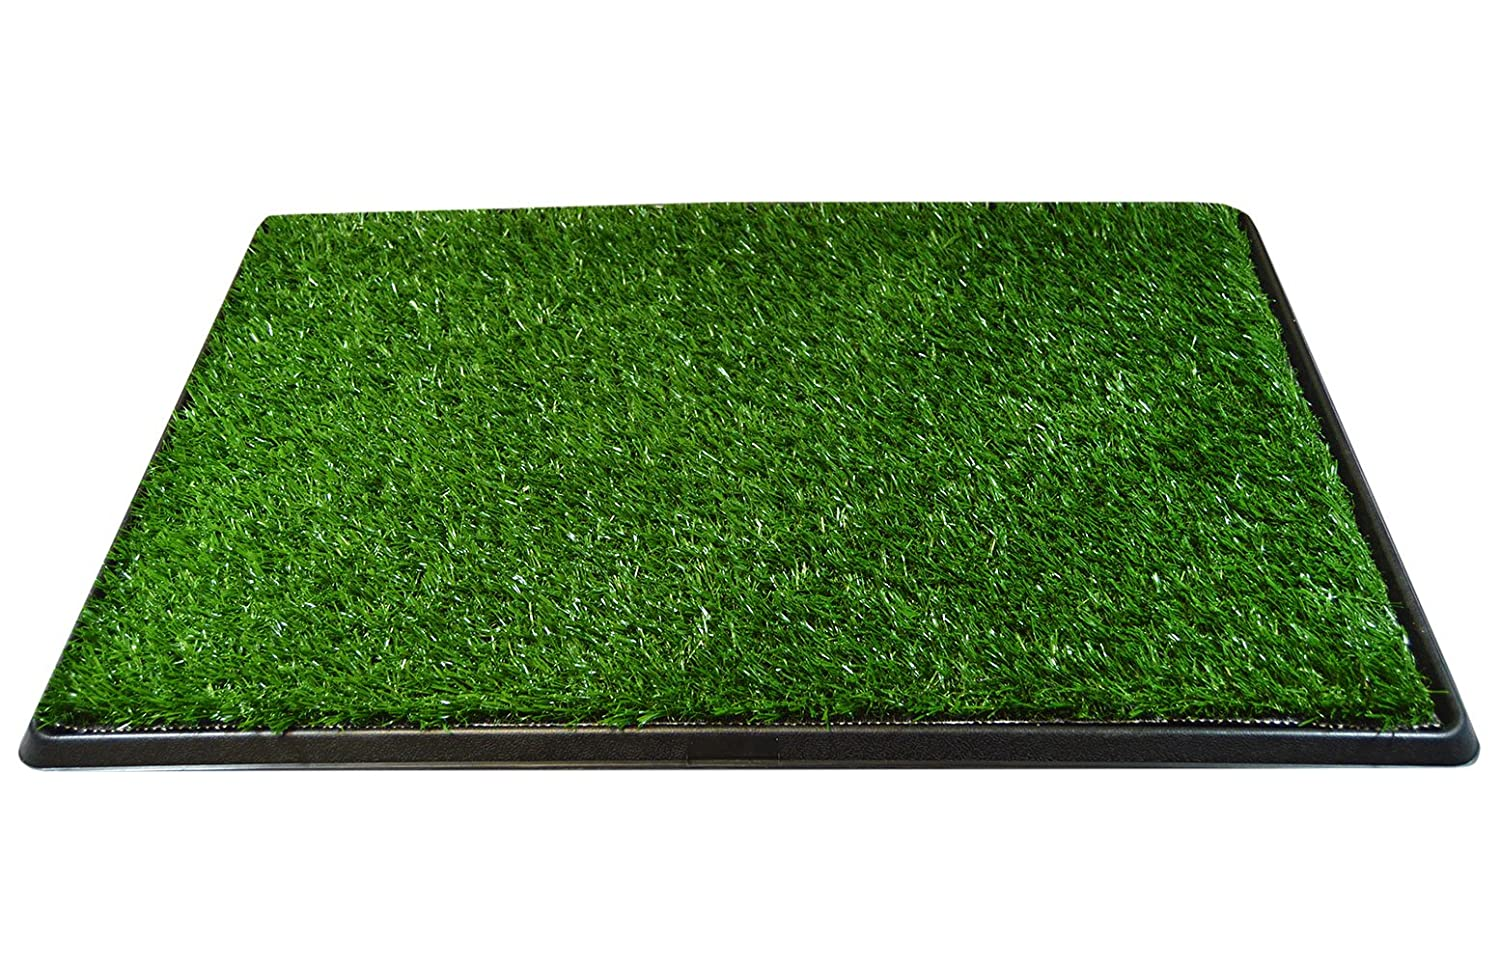 20\ Premium Pet Dog Pee Turf Bathroom Relief System, Durable Weather Proof, Synthetic Grass, Housebreaking, Portable, Easy to Clean, NonToxic, Perfect for Indoor & Outdoor (20 x 30 inches, 50.8 x 76.2 cm  3 layers) by Downtown Pet Supply